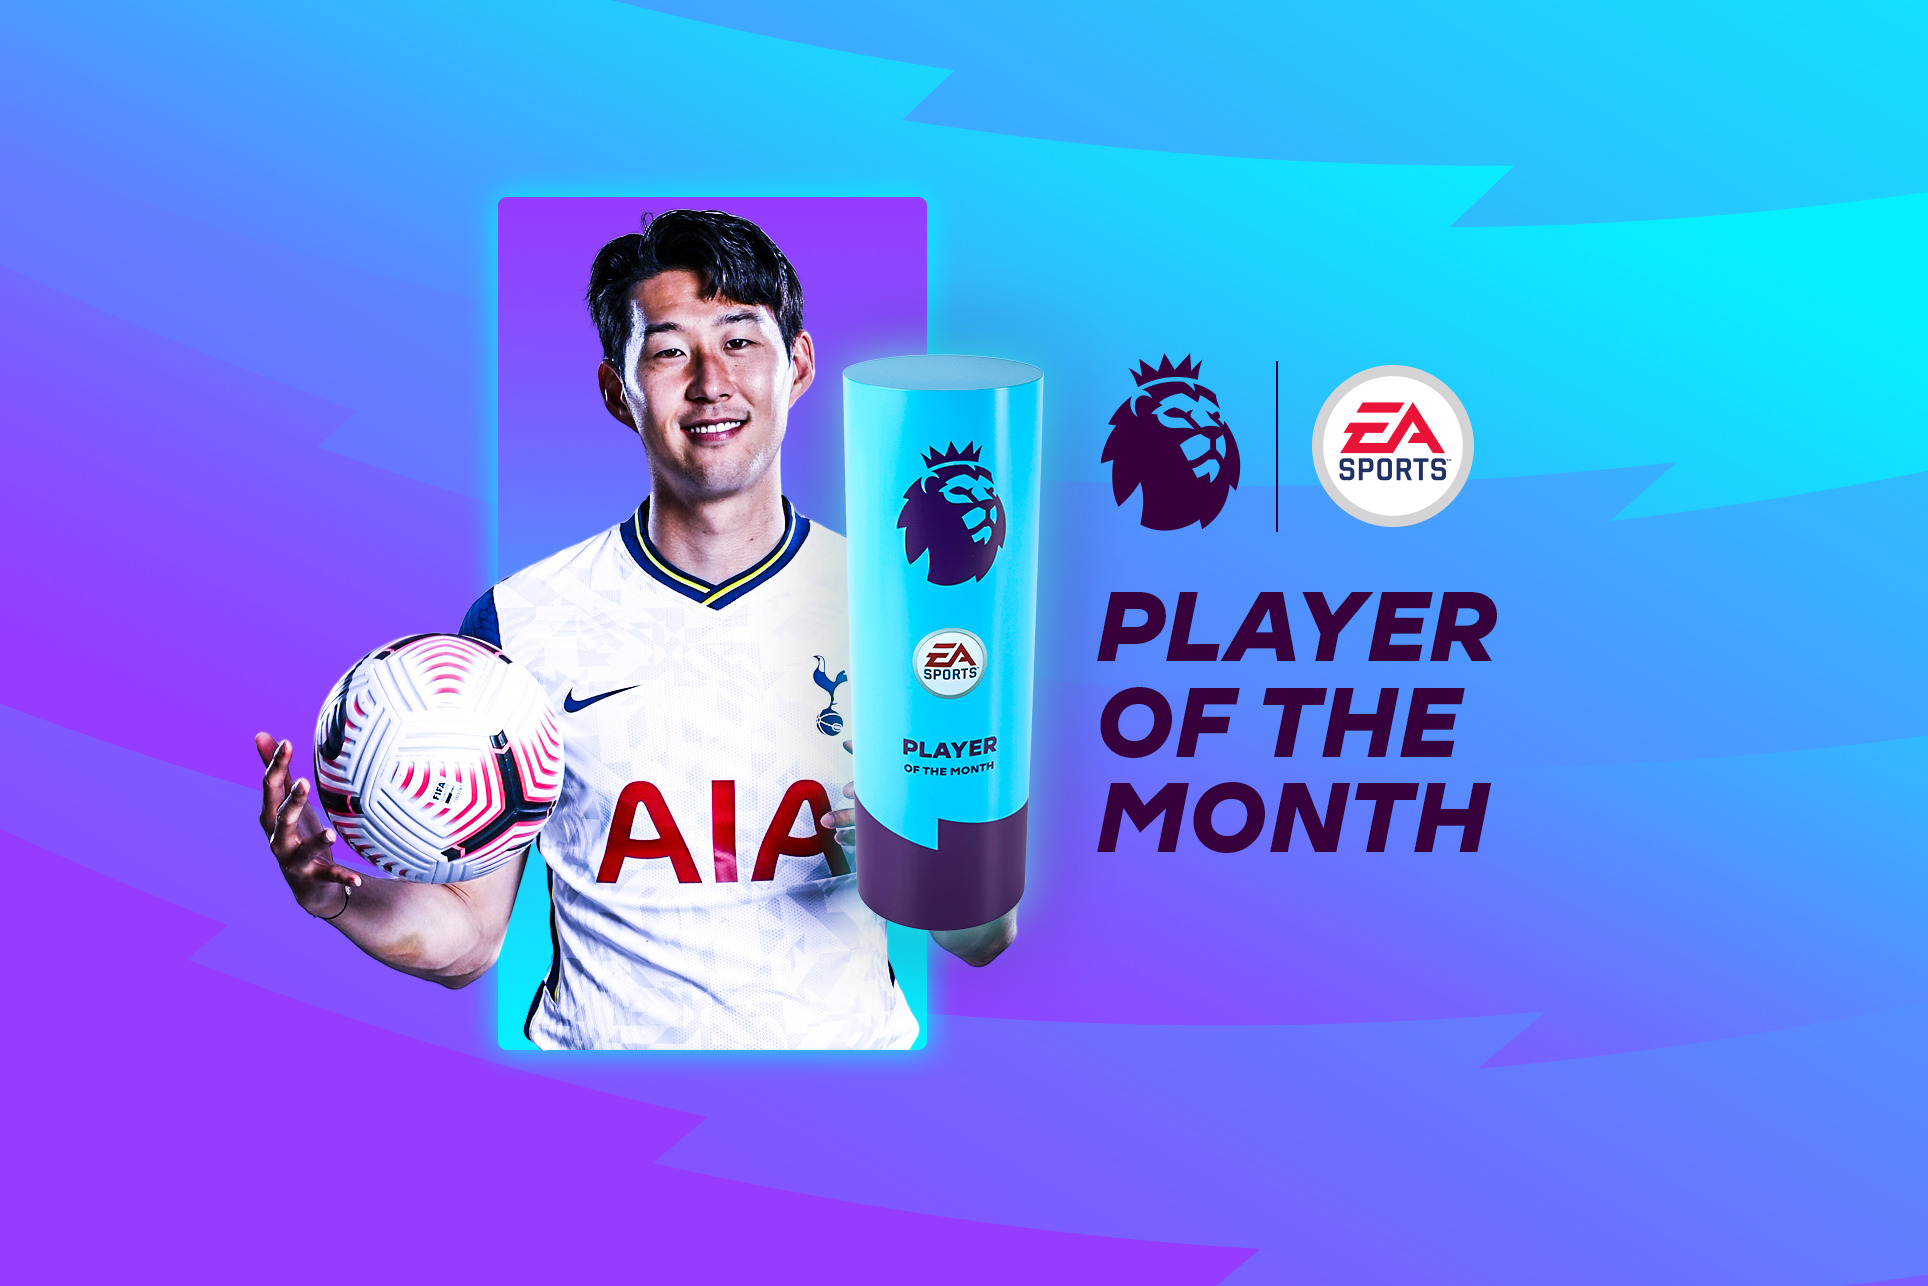 Should You Do The Heung Min Son Player Of The Month SBC In FIFA 21? Expensive, But Not Overpriced